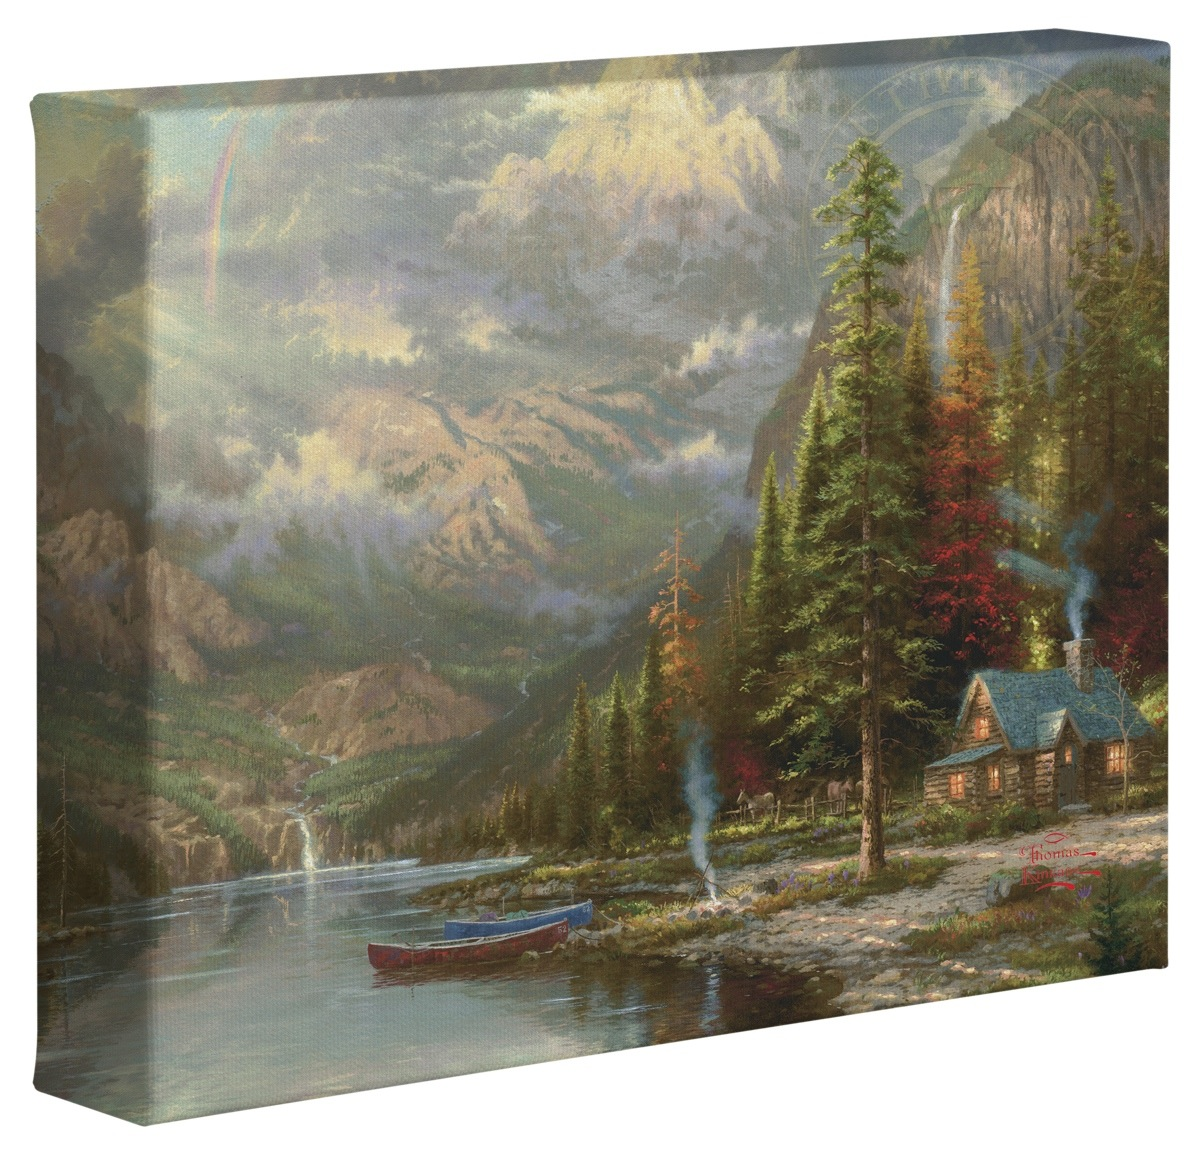 Mountain majesty 8 x 10 gallery wrapped canvas the for Mountain majesty